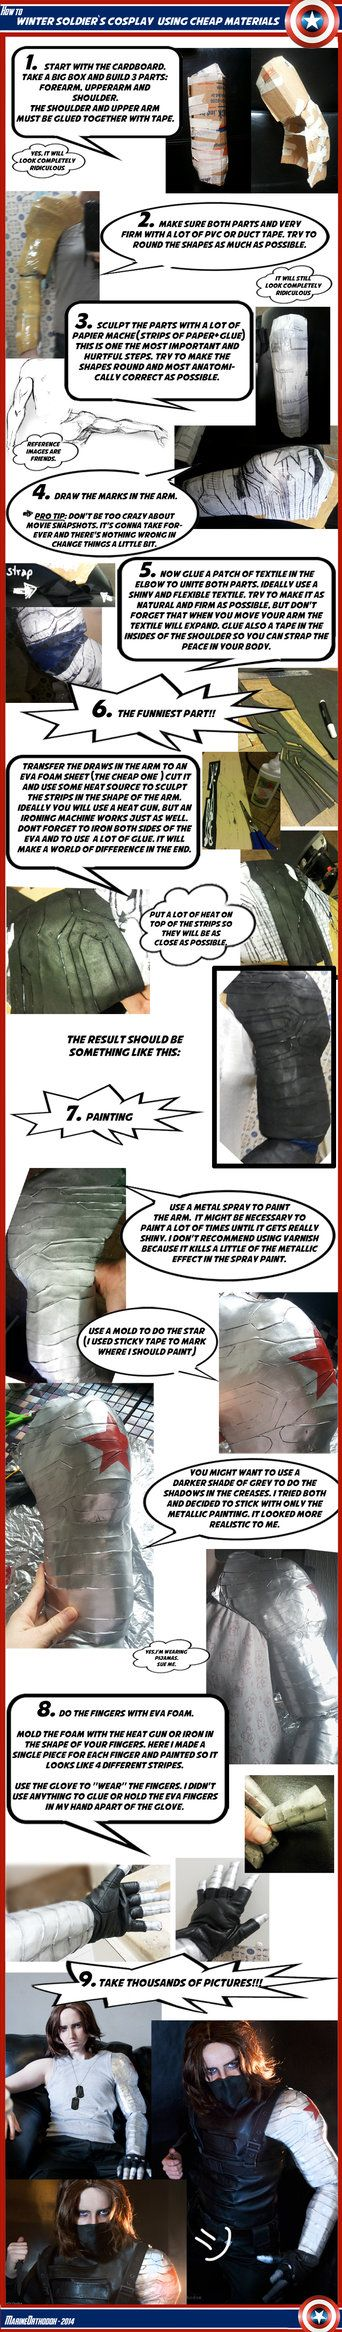 TUTORIAL - Winter Soldier's metal arm by MarineOrthodox (Halloween)